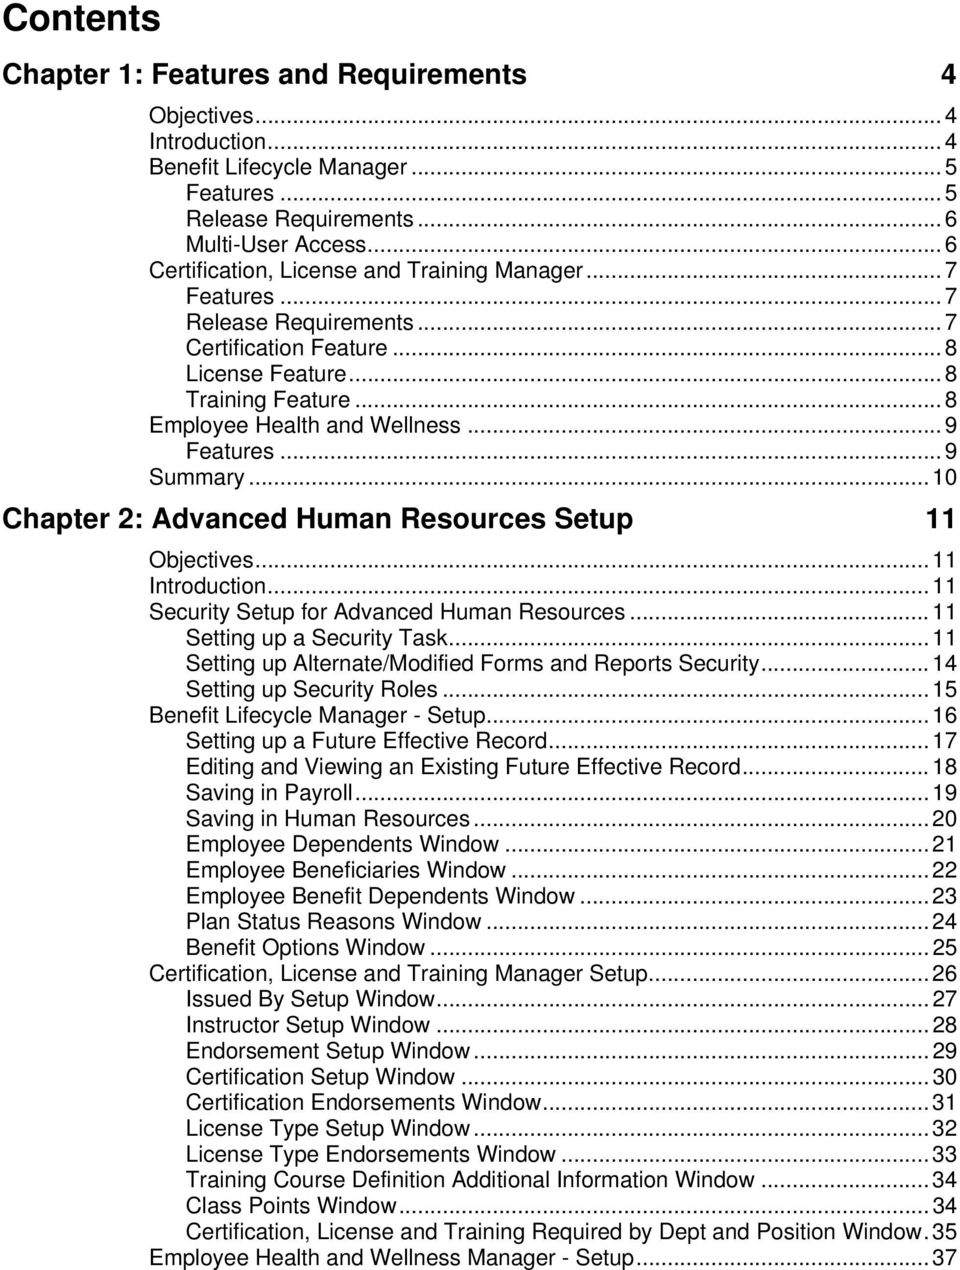 .. 9 Features... 9 Summary... 10 Chapter 2: Advanced Human Resurces Setup 11 Objectives... 11 Intrductin... 11 Security Setup fr Advanced Human Resurces... 11 Setting up a Security Task.